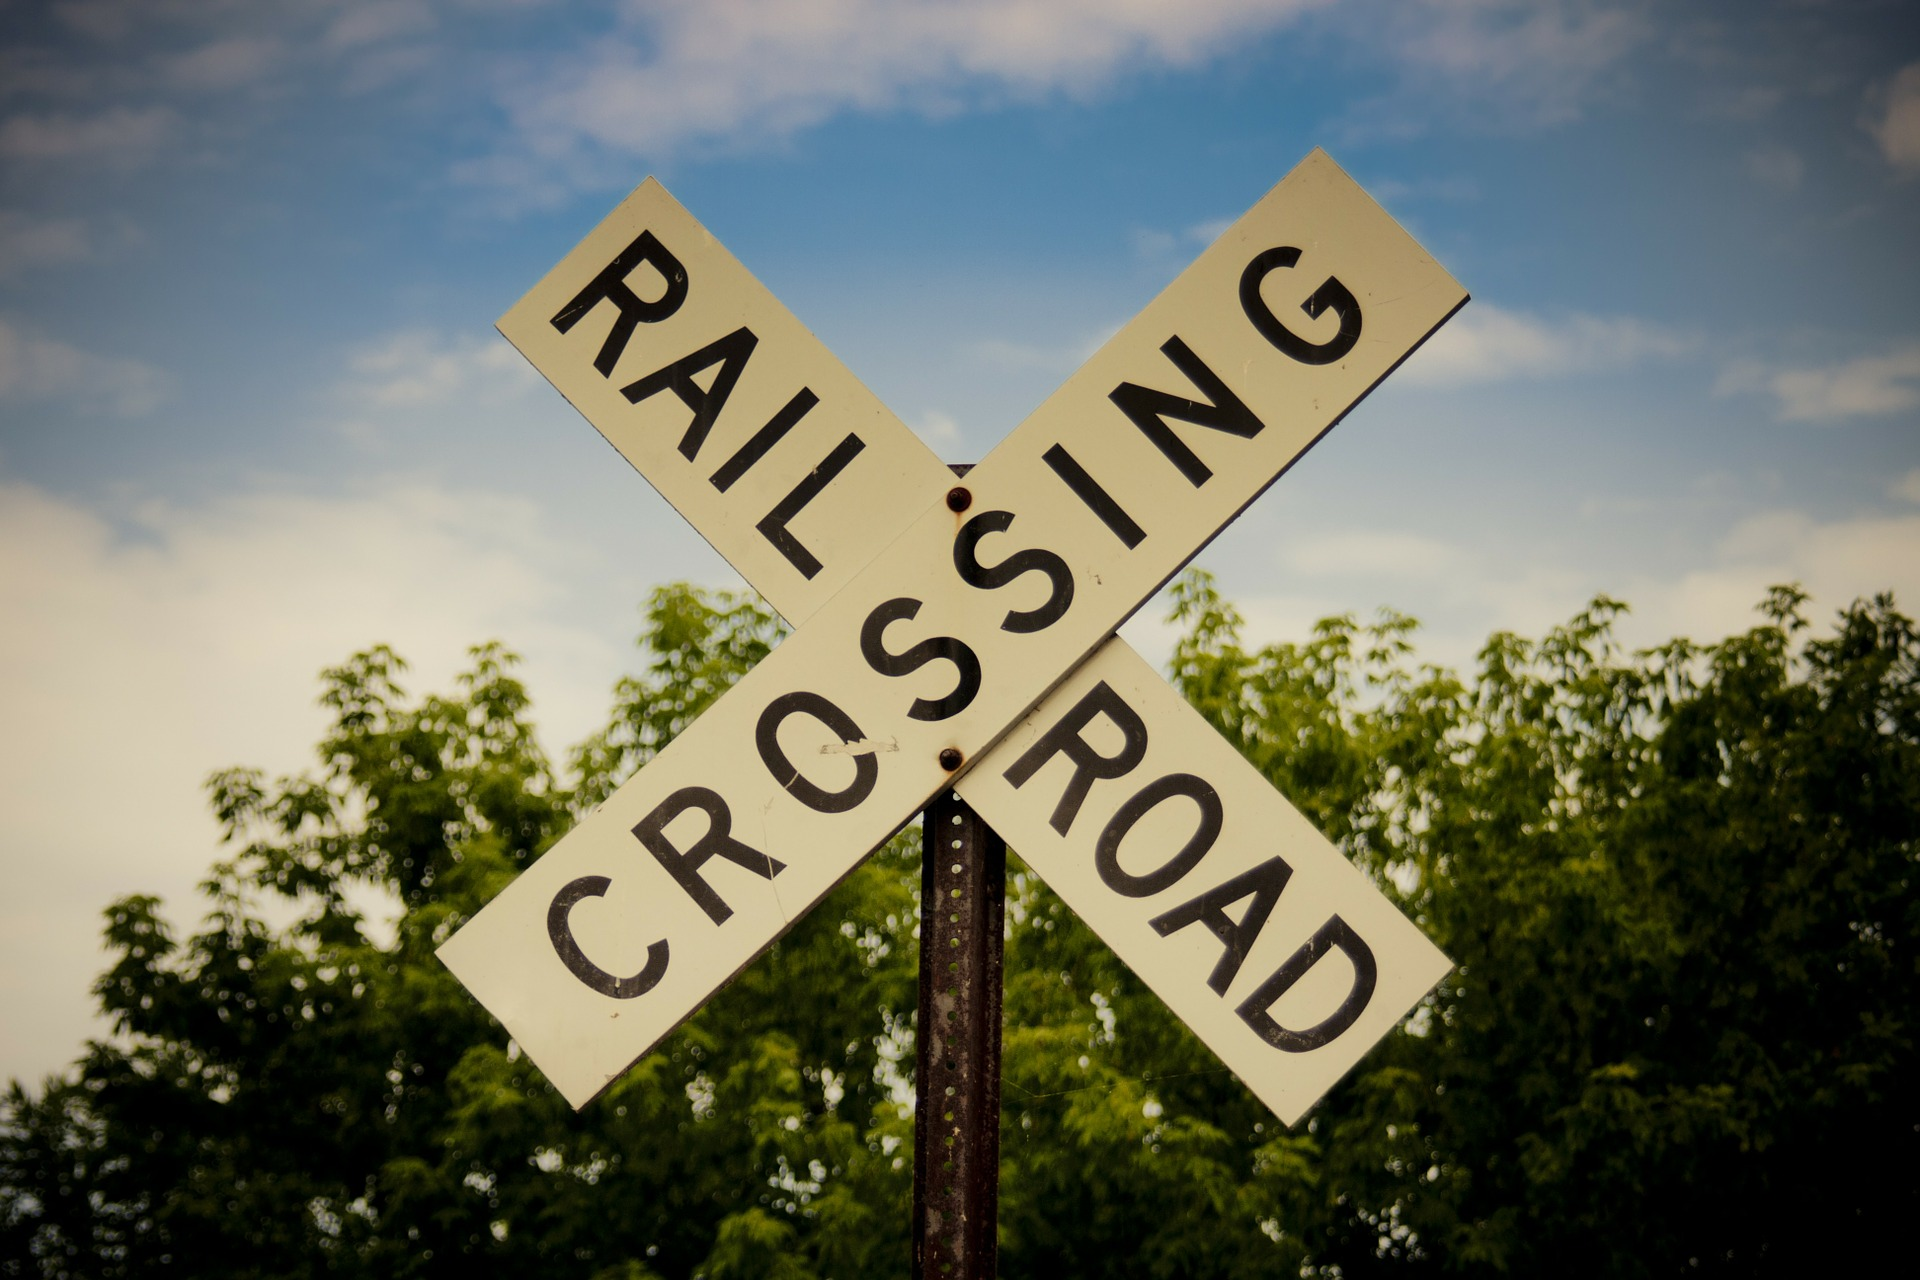 Argo applies for ALDOT grant to widen railroad crossing